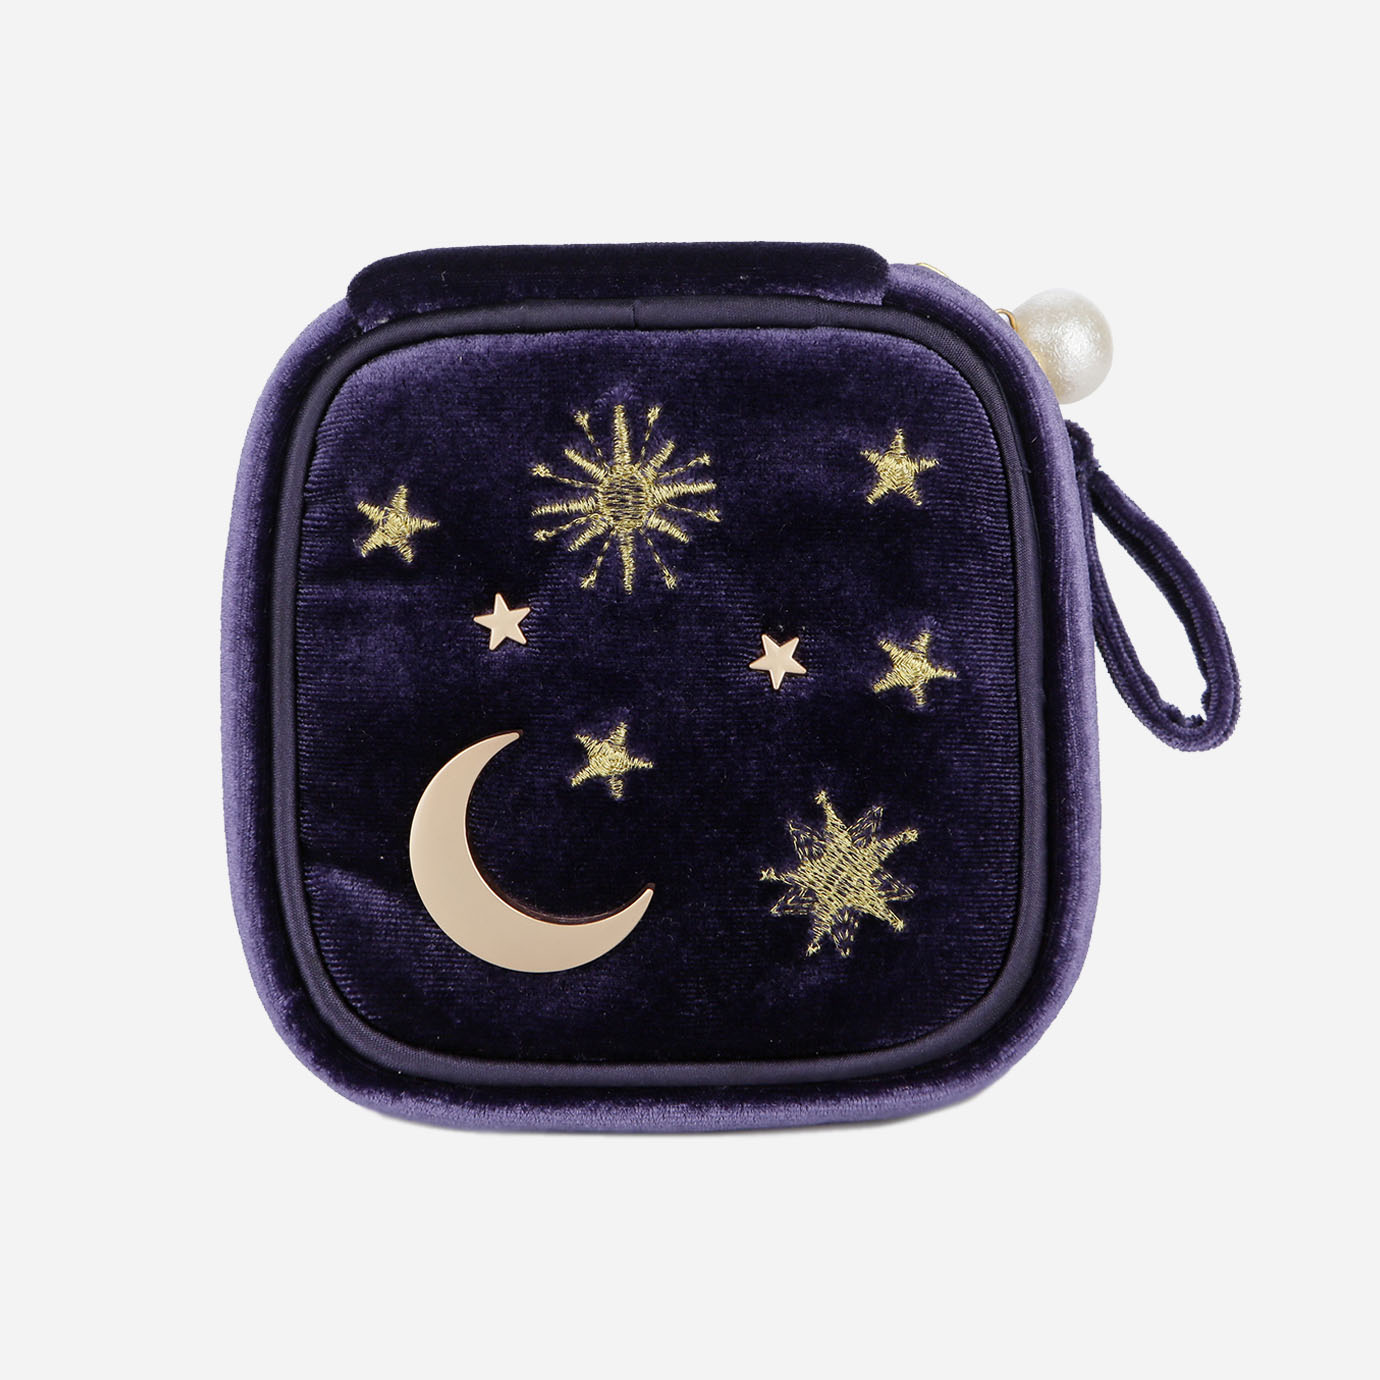 Moonstar Travel Jewelry Case Organizer